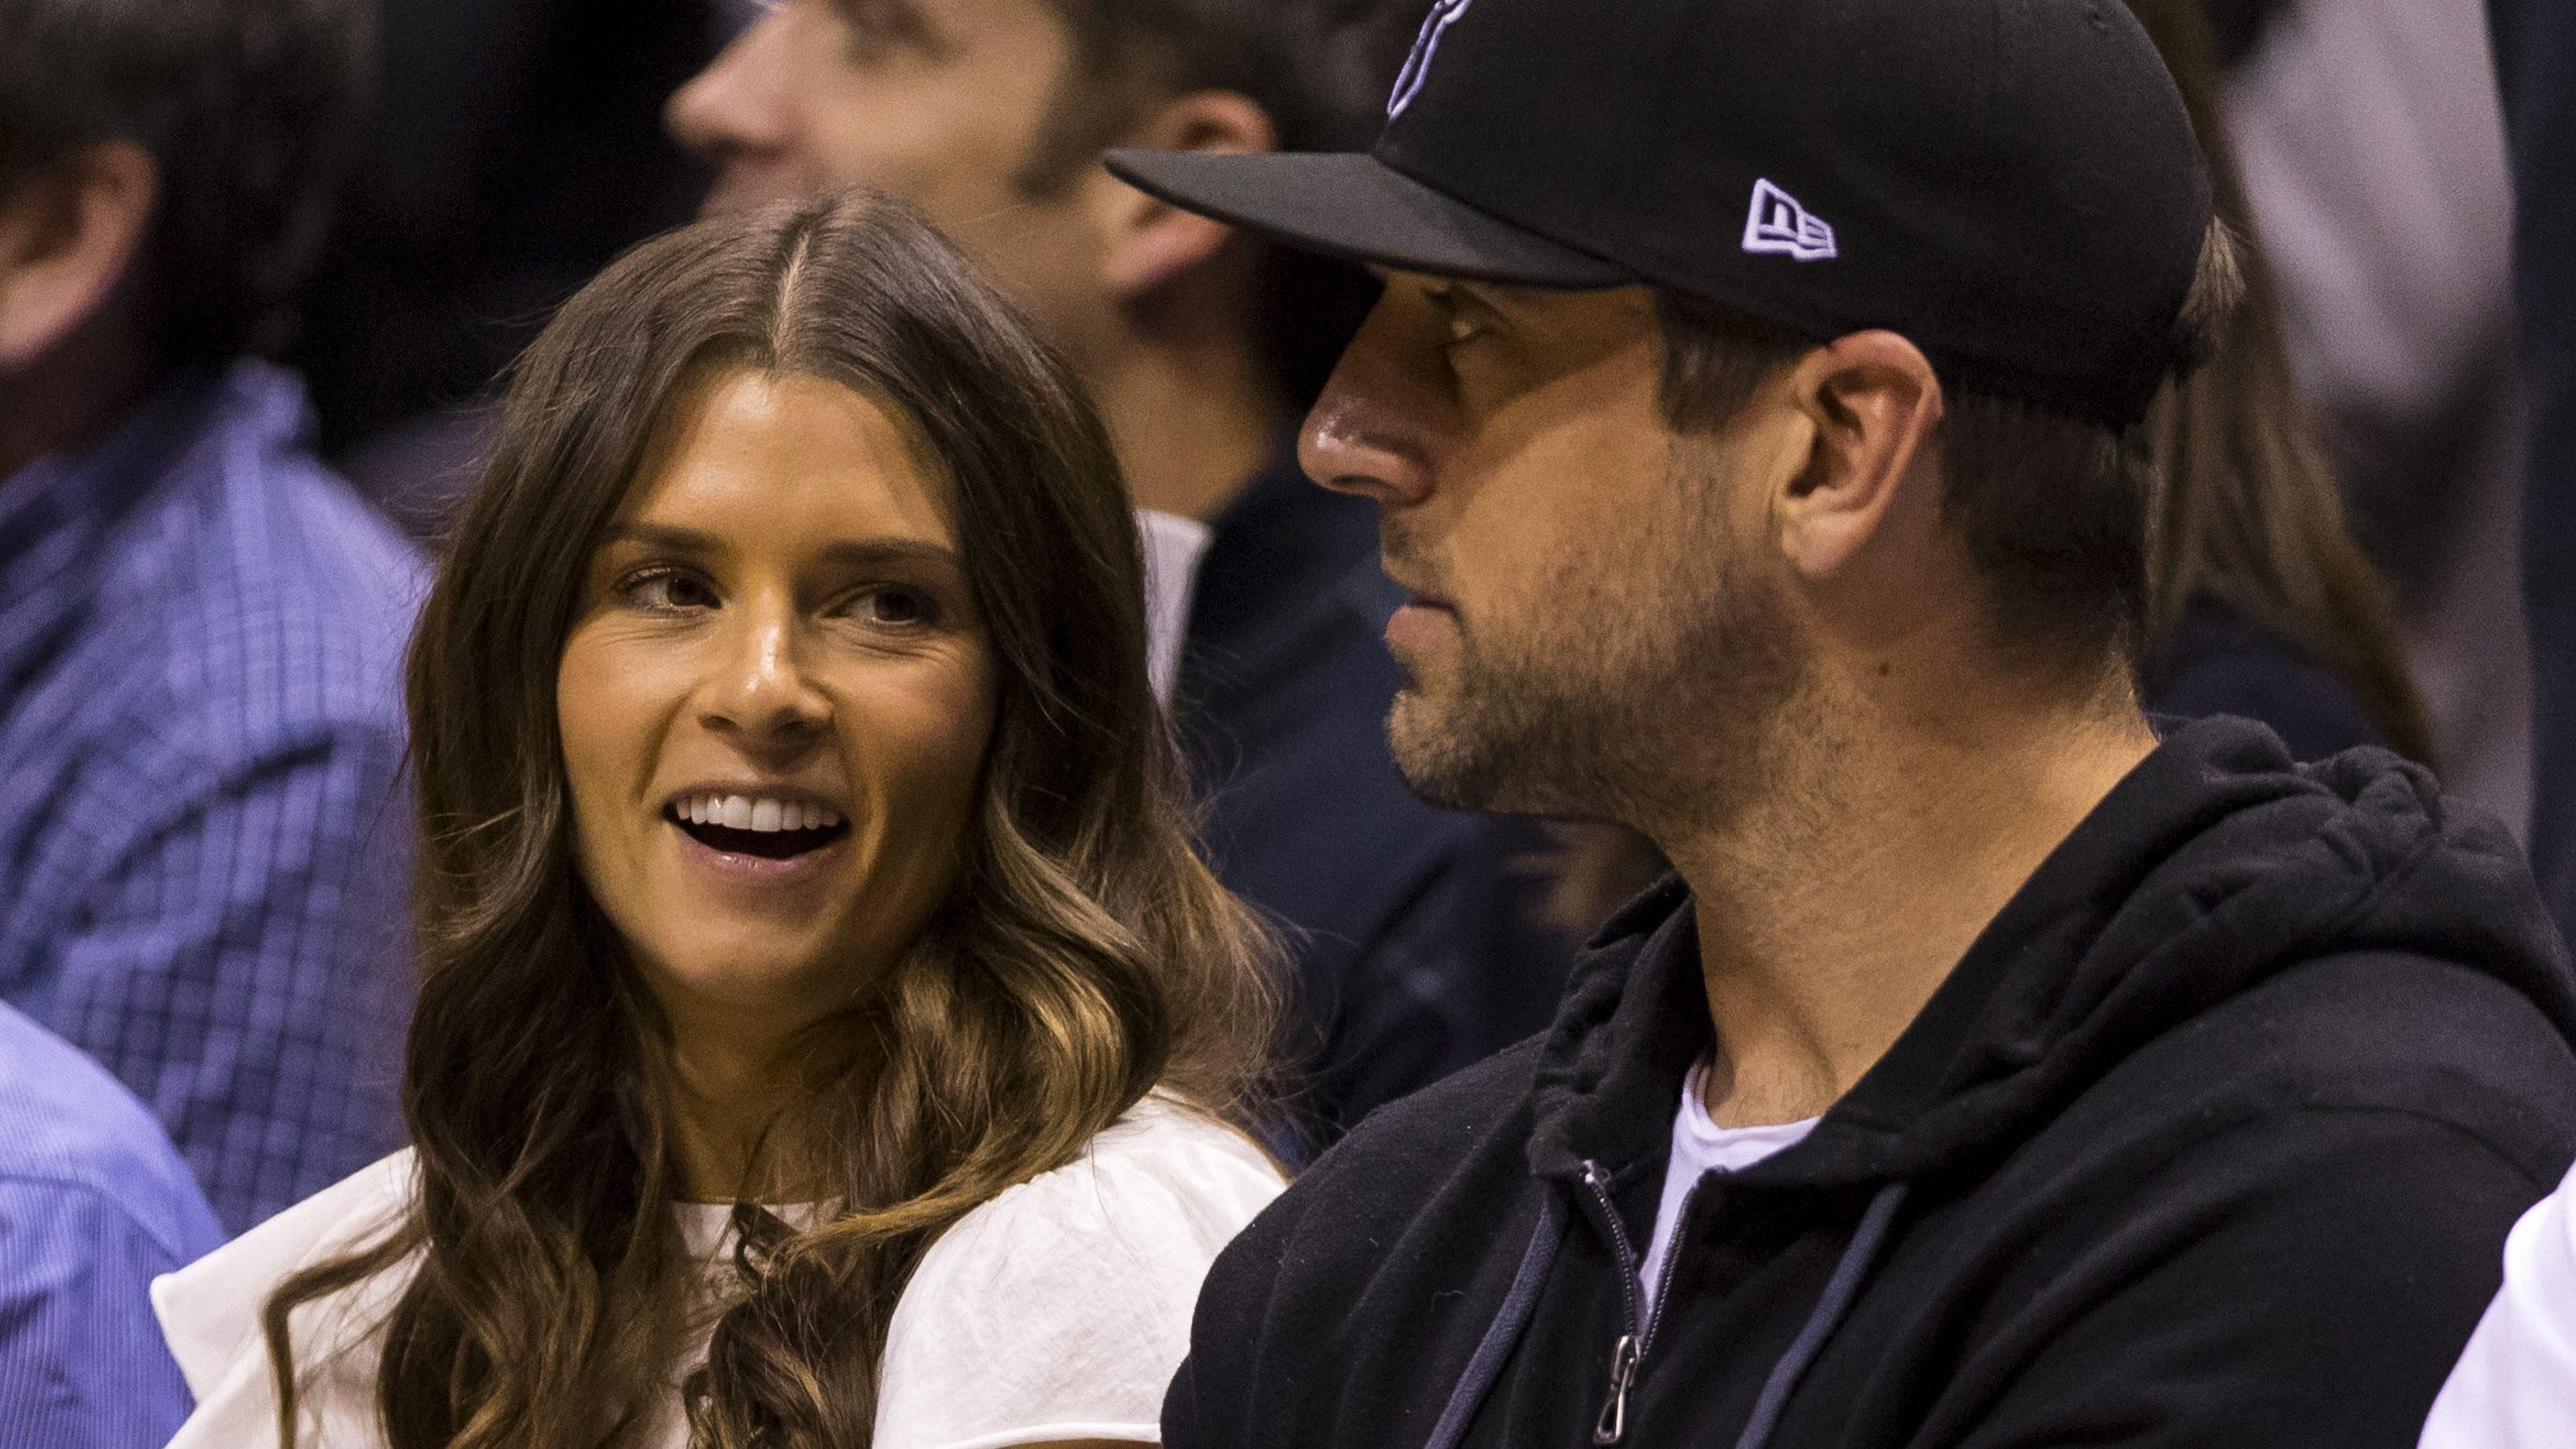 Aaron Rodgers And Danica Patrick Have Ended Their Relationship